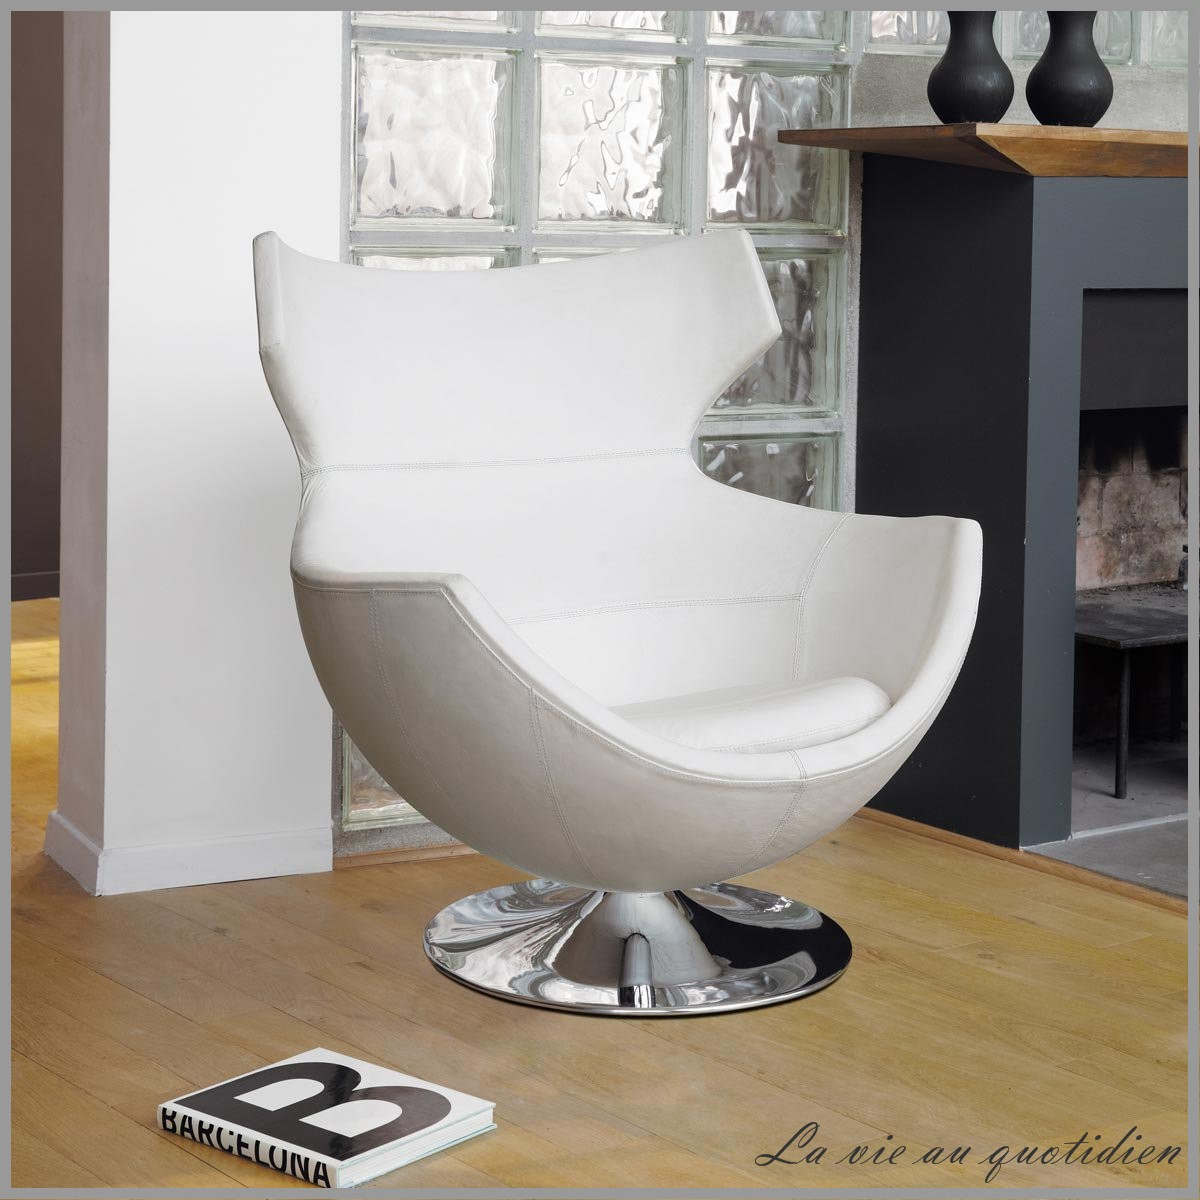 fauteuil moderne design pas cher id es de d coration. Black Bedroom Furniture Sets. Home Design Ideas